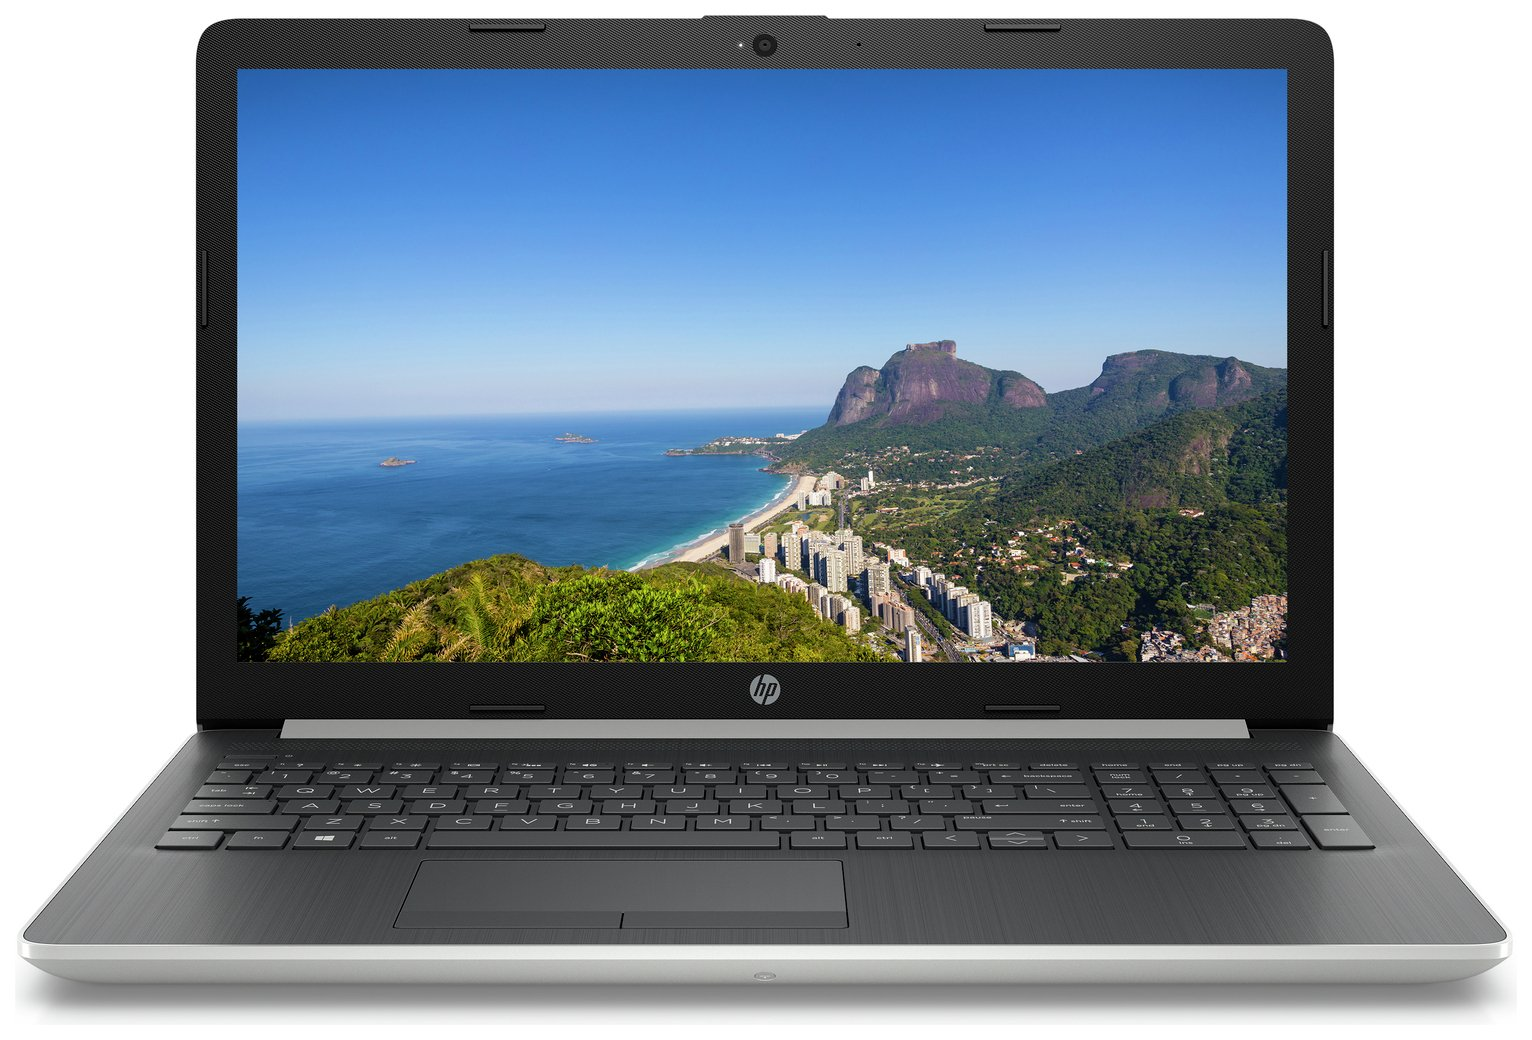 HP 15.6 Inch i7 8GB 1TB FHD Laptop - Silver